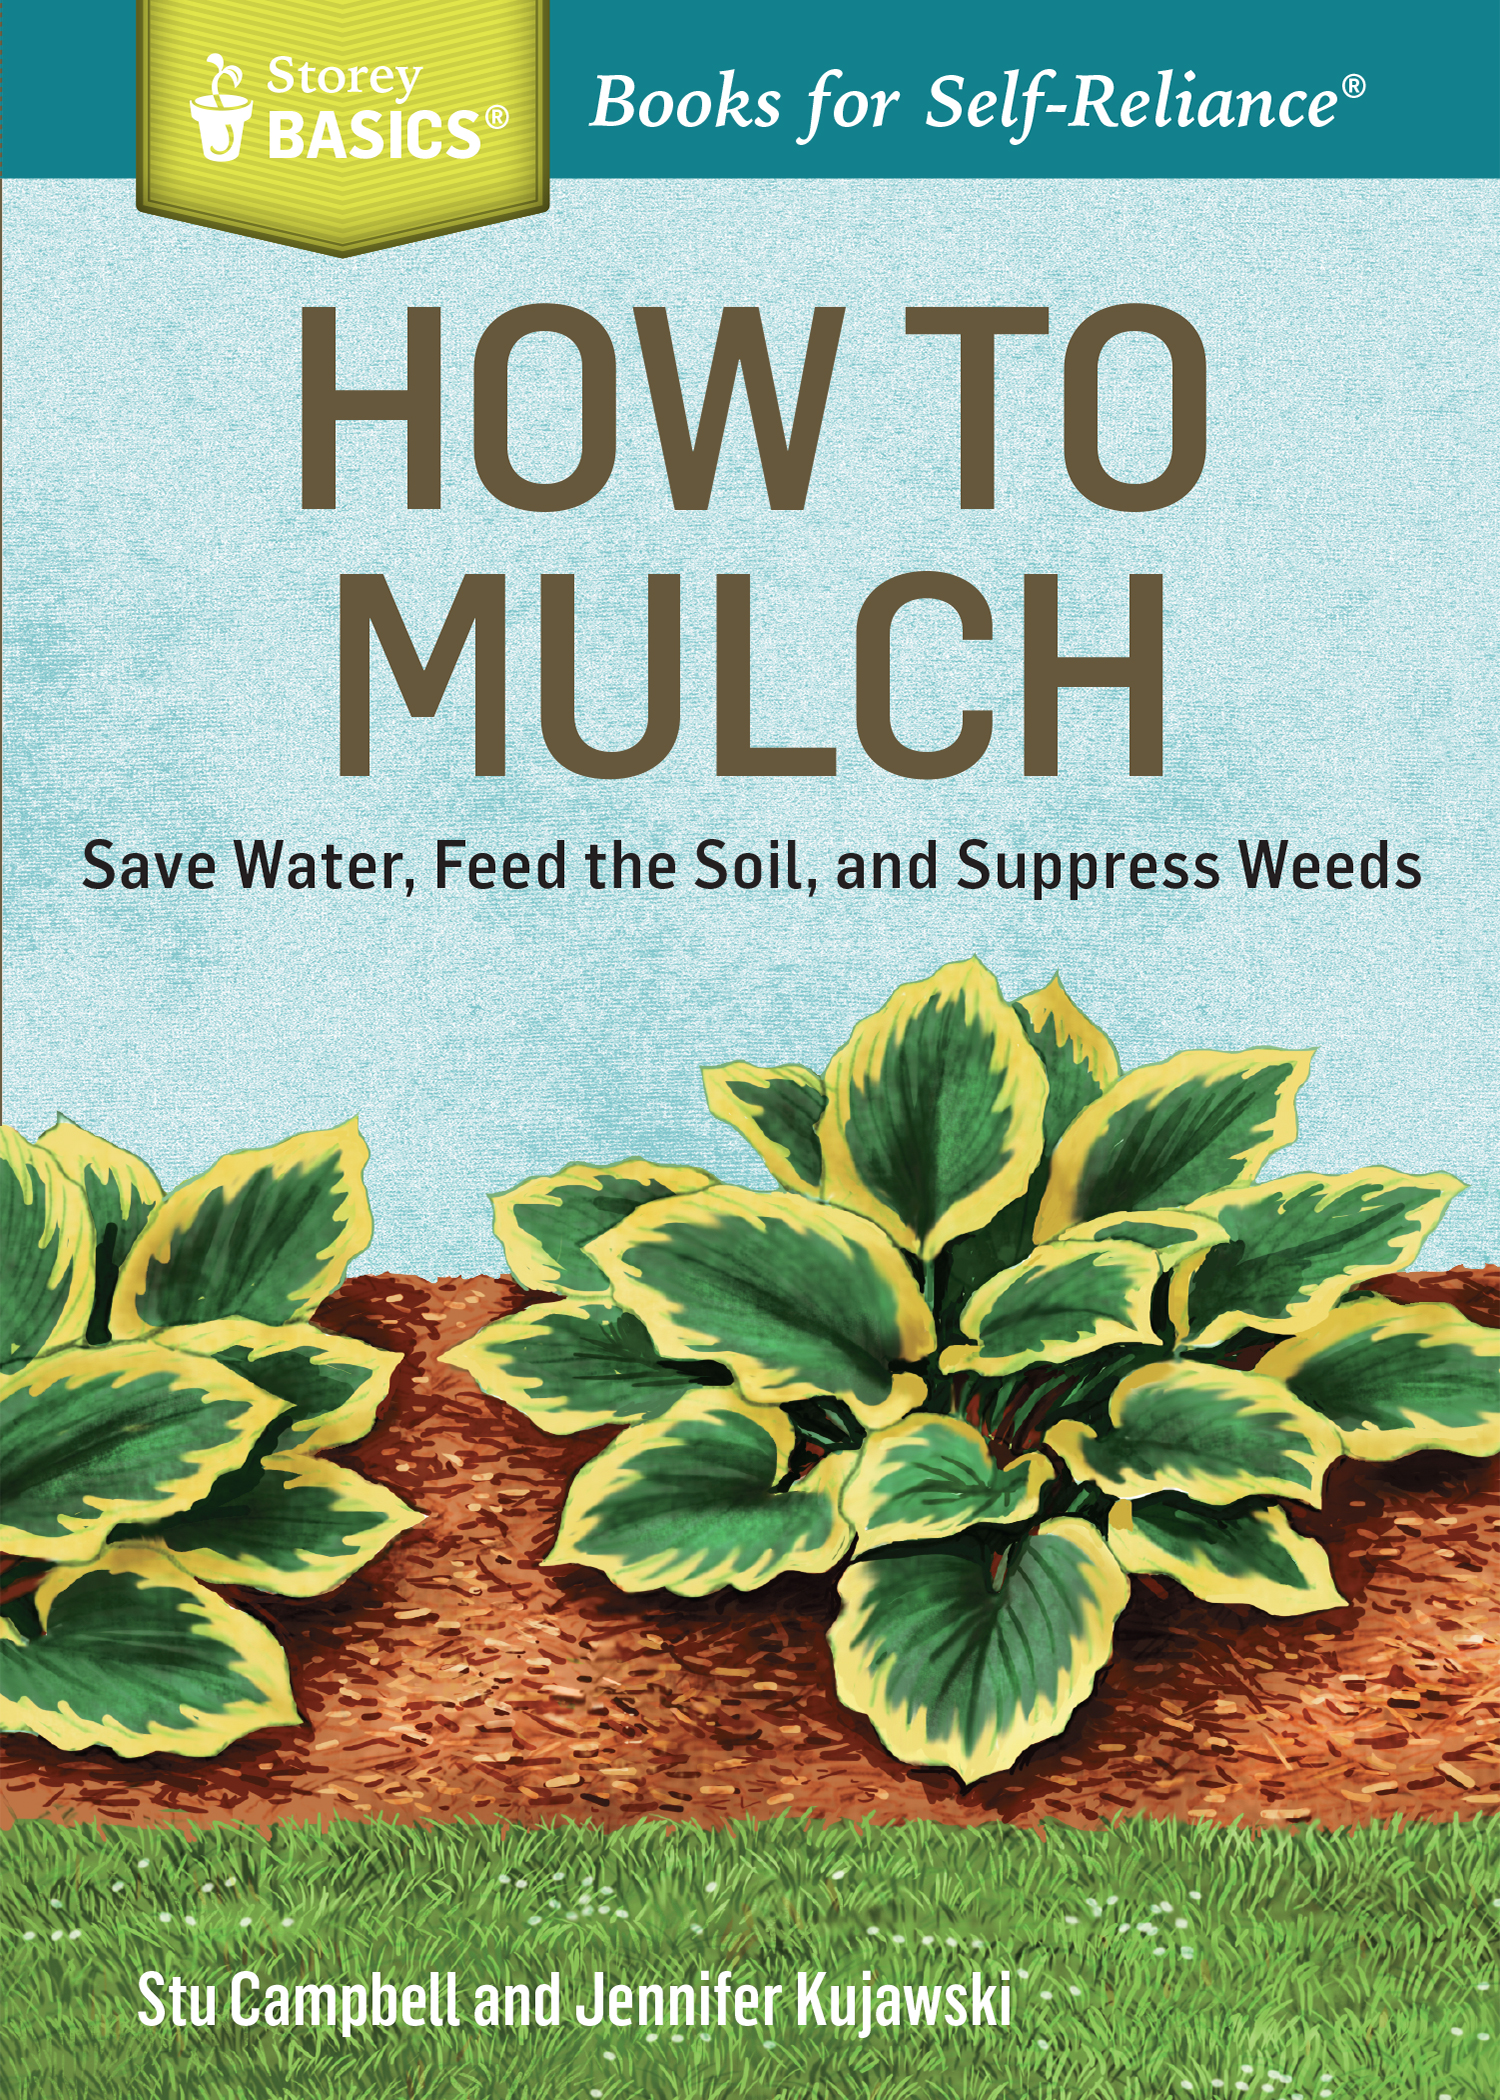 How to Mulch Save Water, Feed the Soil, and Suppress Weeds. A Storey BASICS®Title - Stu Campbell